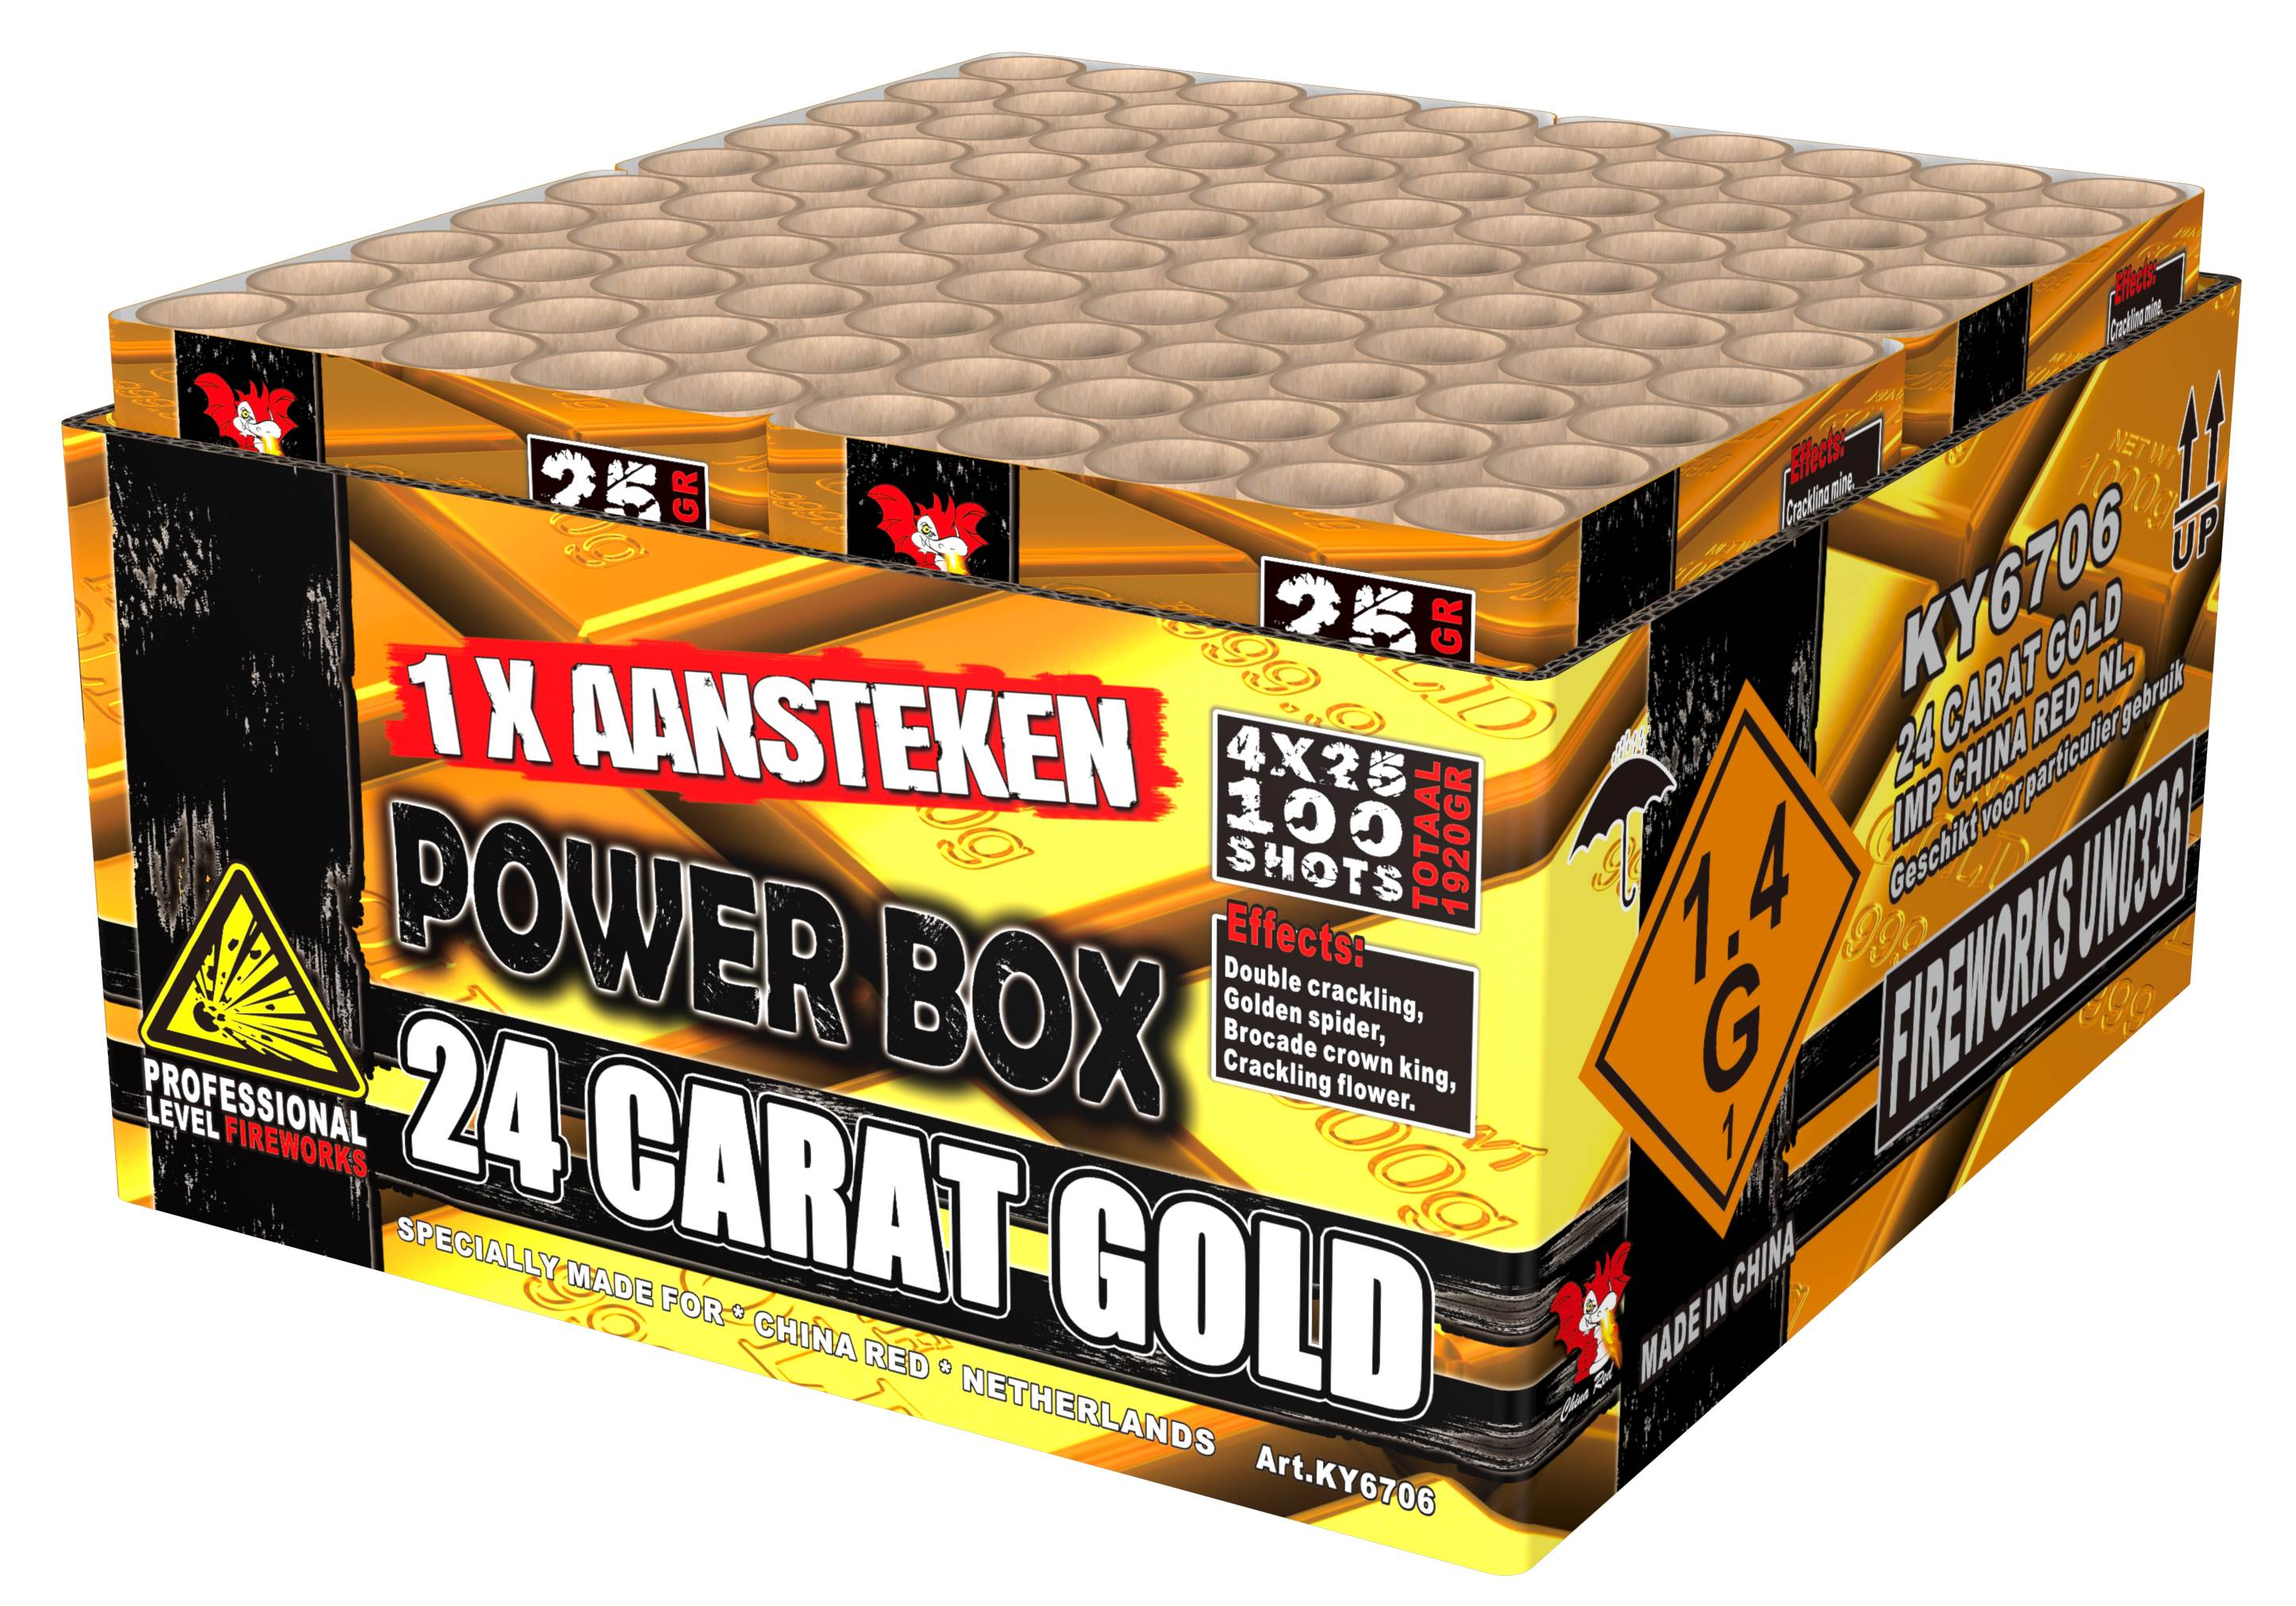 24 carat gold china red compound 2 kilo 100 shots ky6706 for Openingstijden intratuin duiven